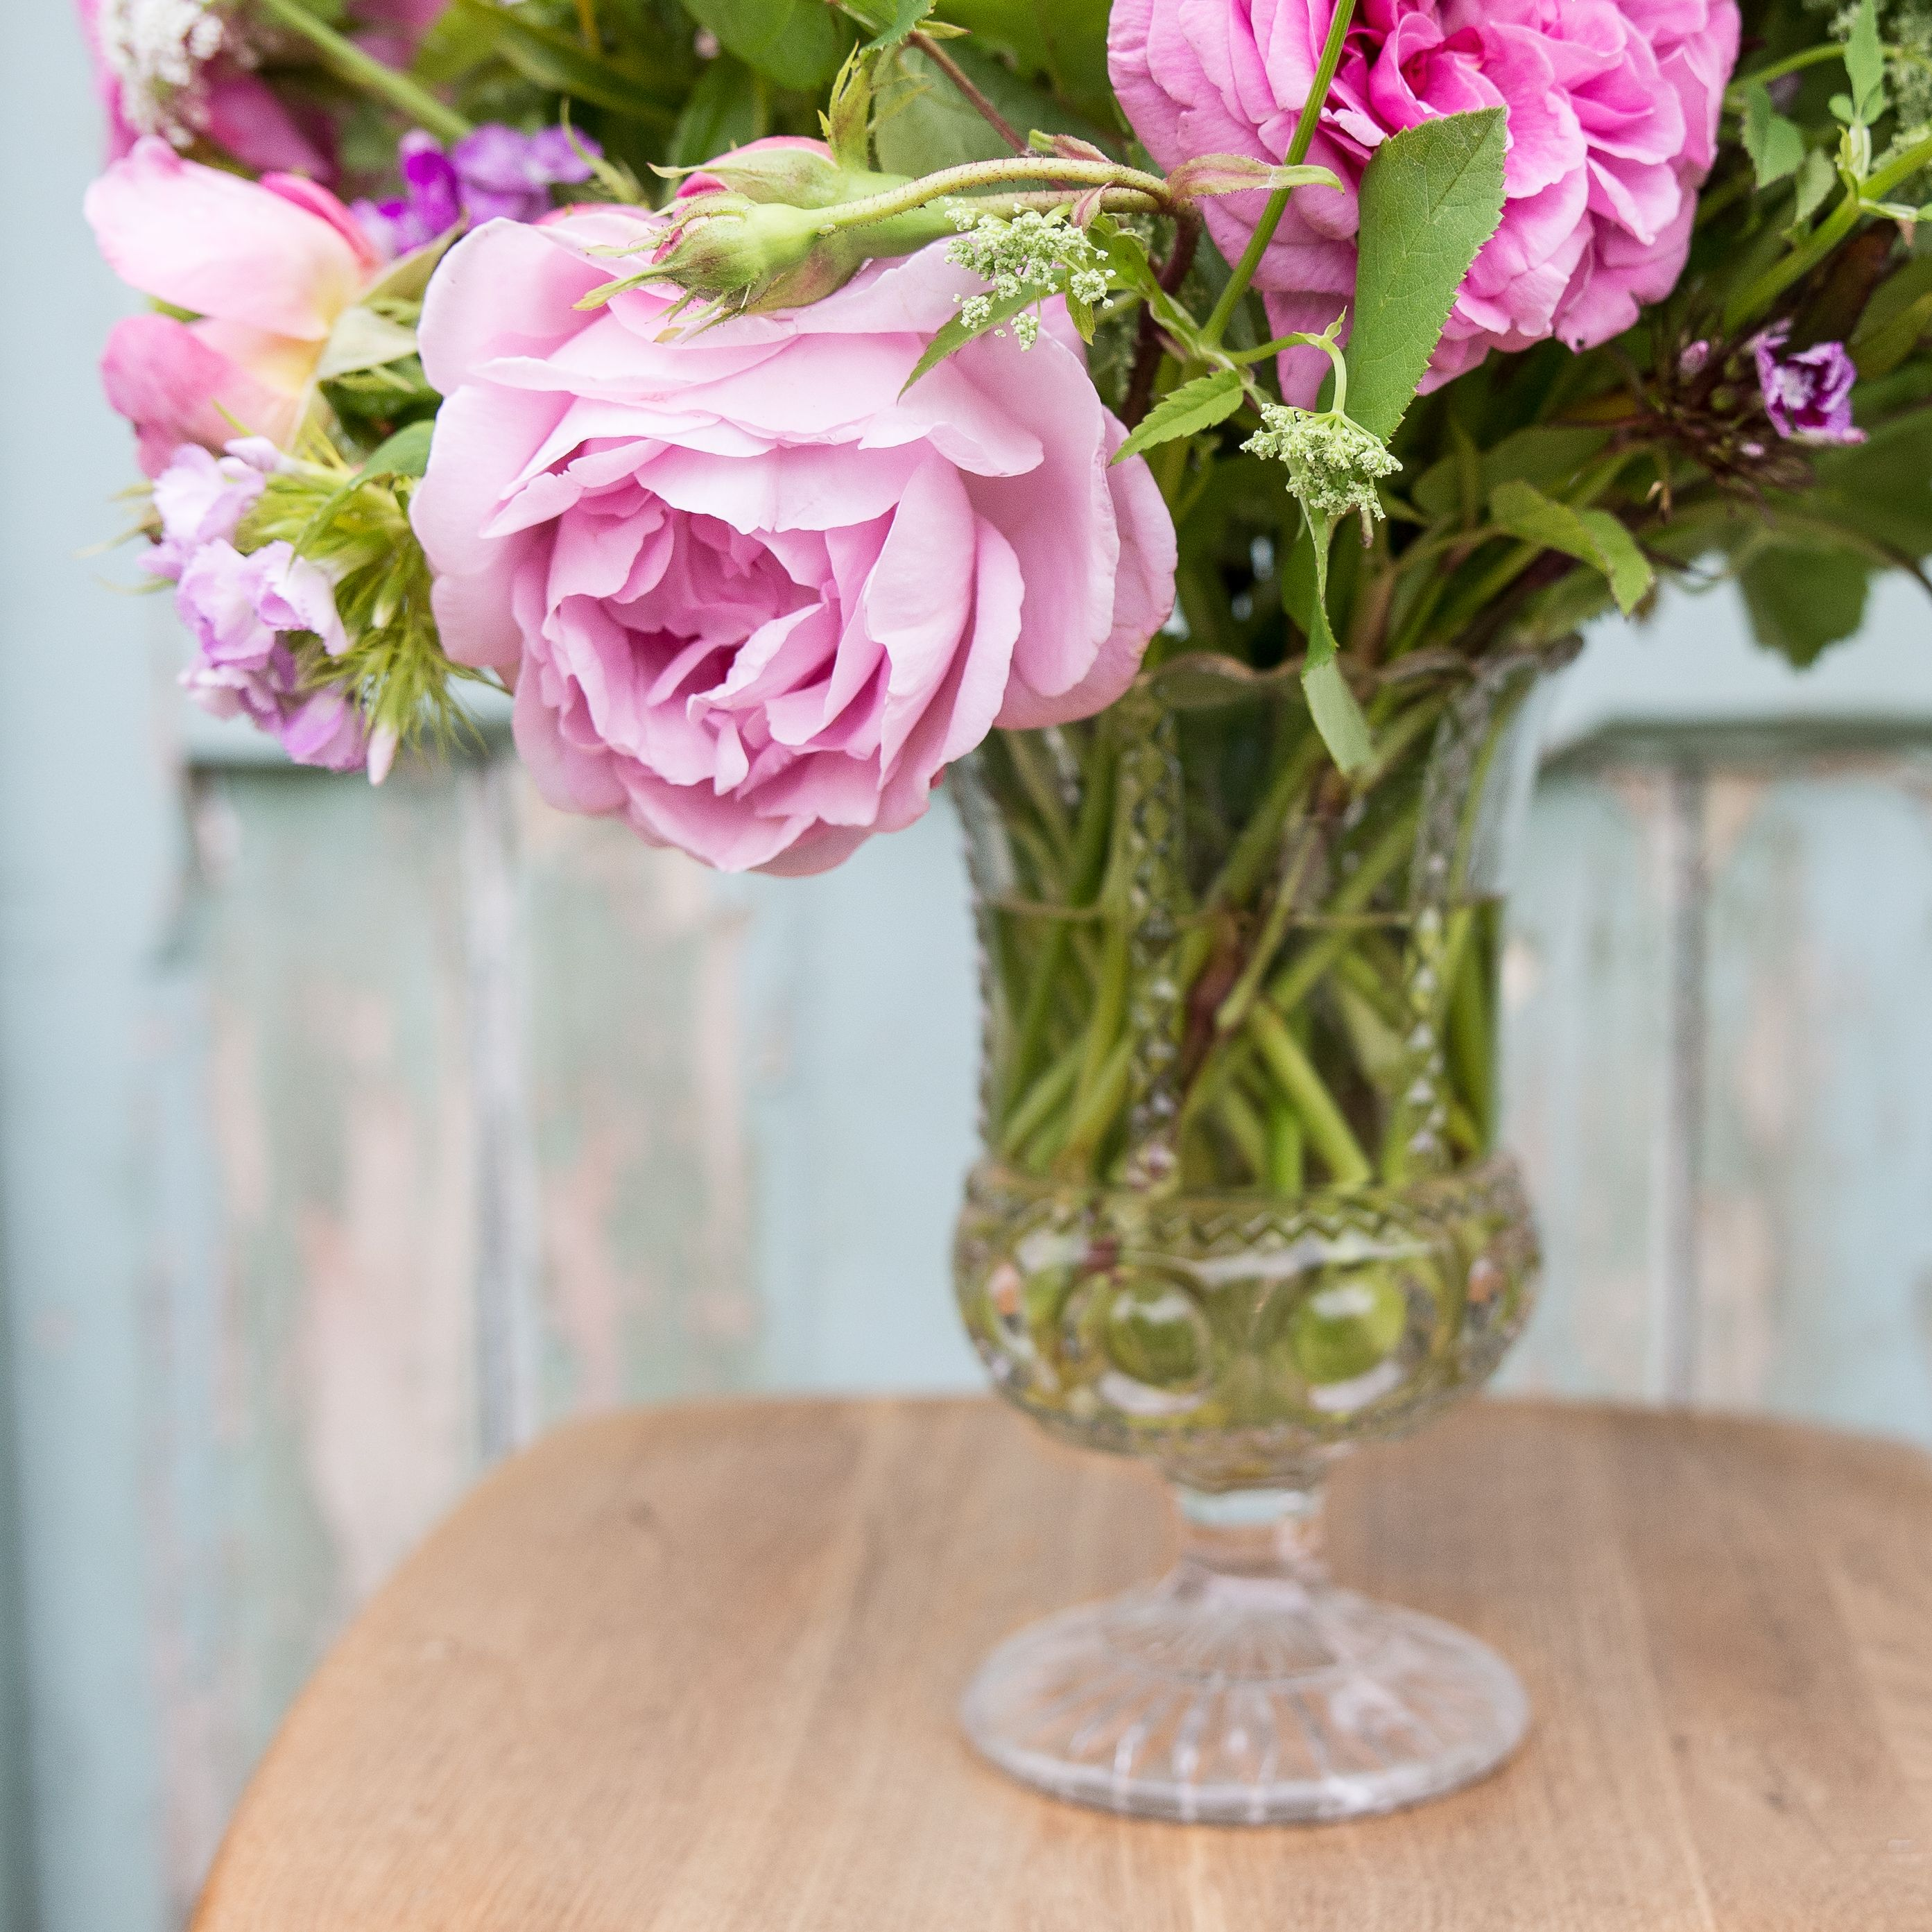 June flowers perfumed constance spry and gertrude jekyll pink perfumed constance spry and gertrude jekyll pink roses in a vintage pressed glass vase photo courtesy of denise wilson reviewsmspy